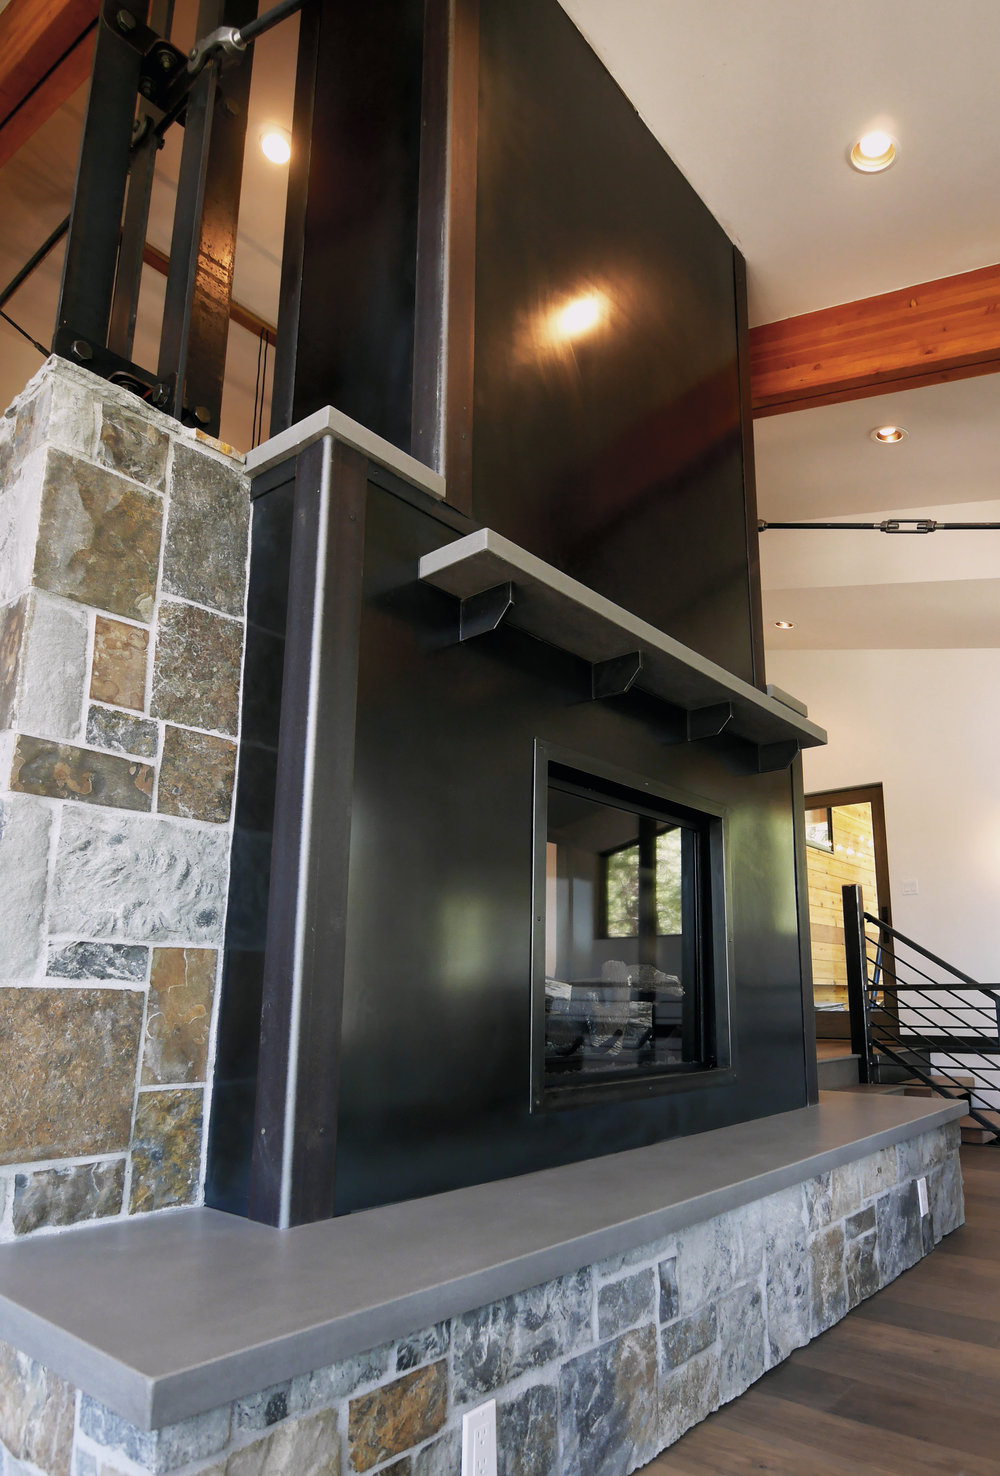 Steel Panel Fireplace with Floating Concrete Mantle and Hearth.jpg